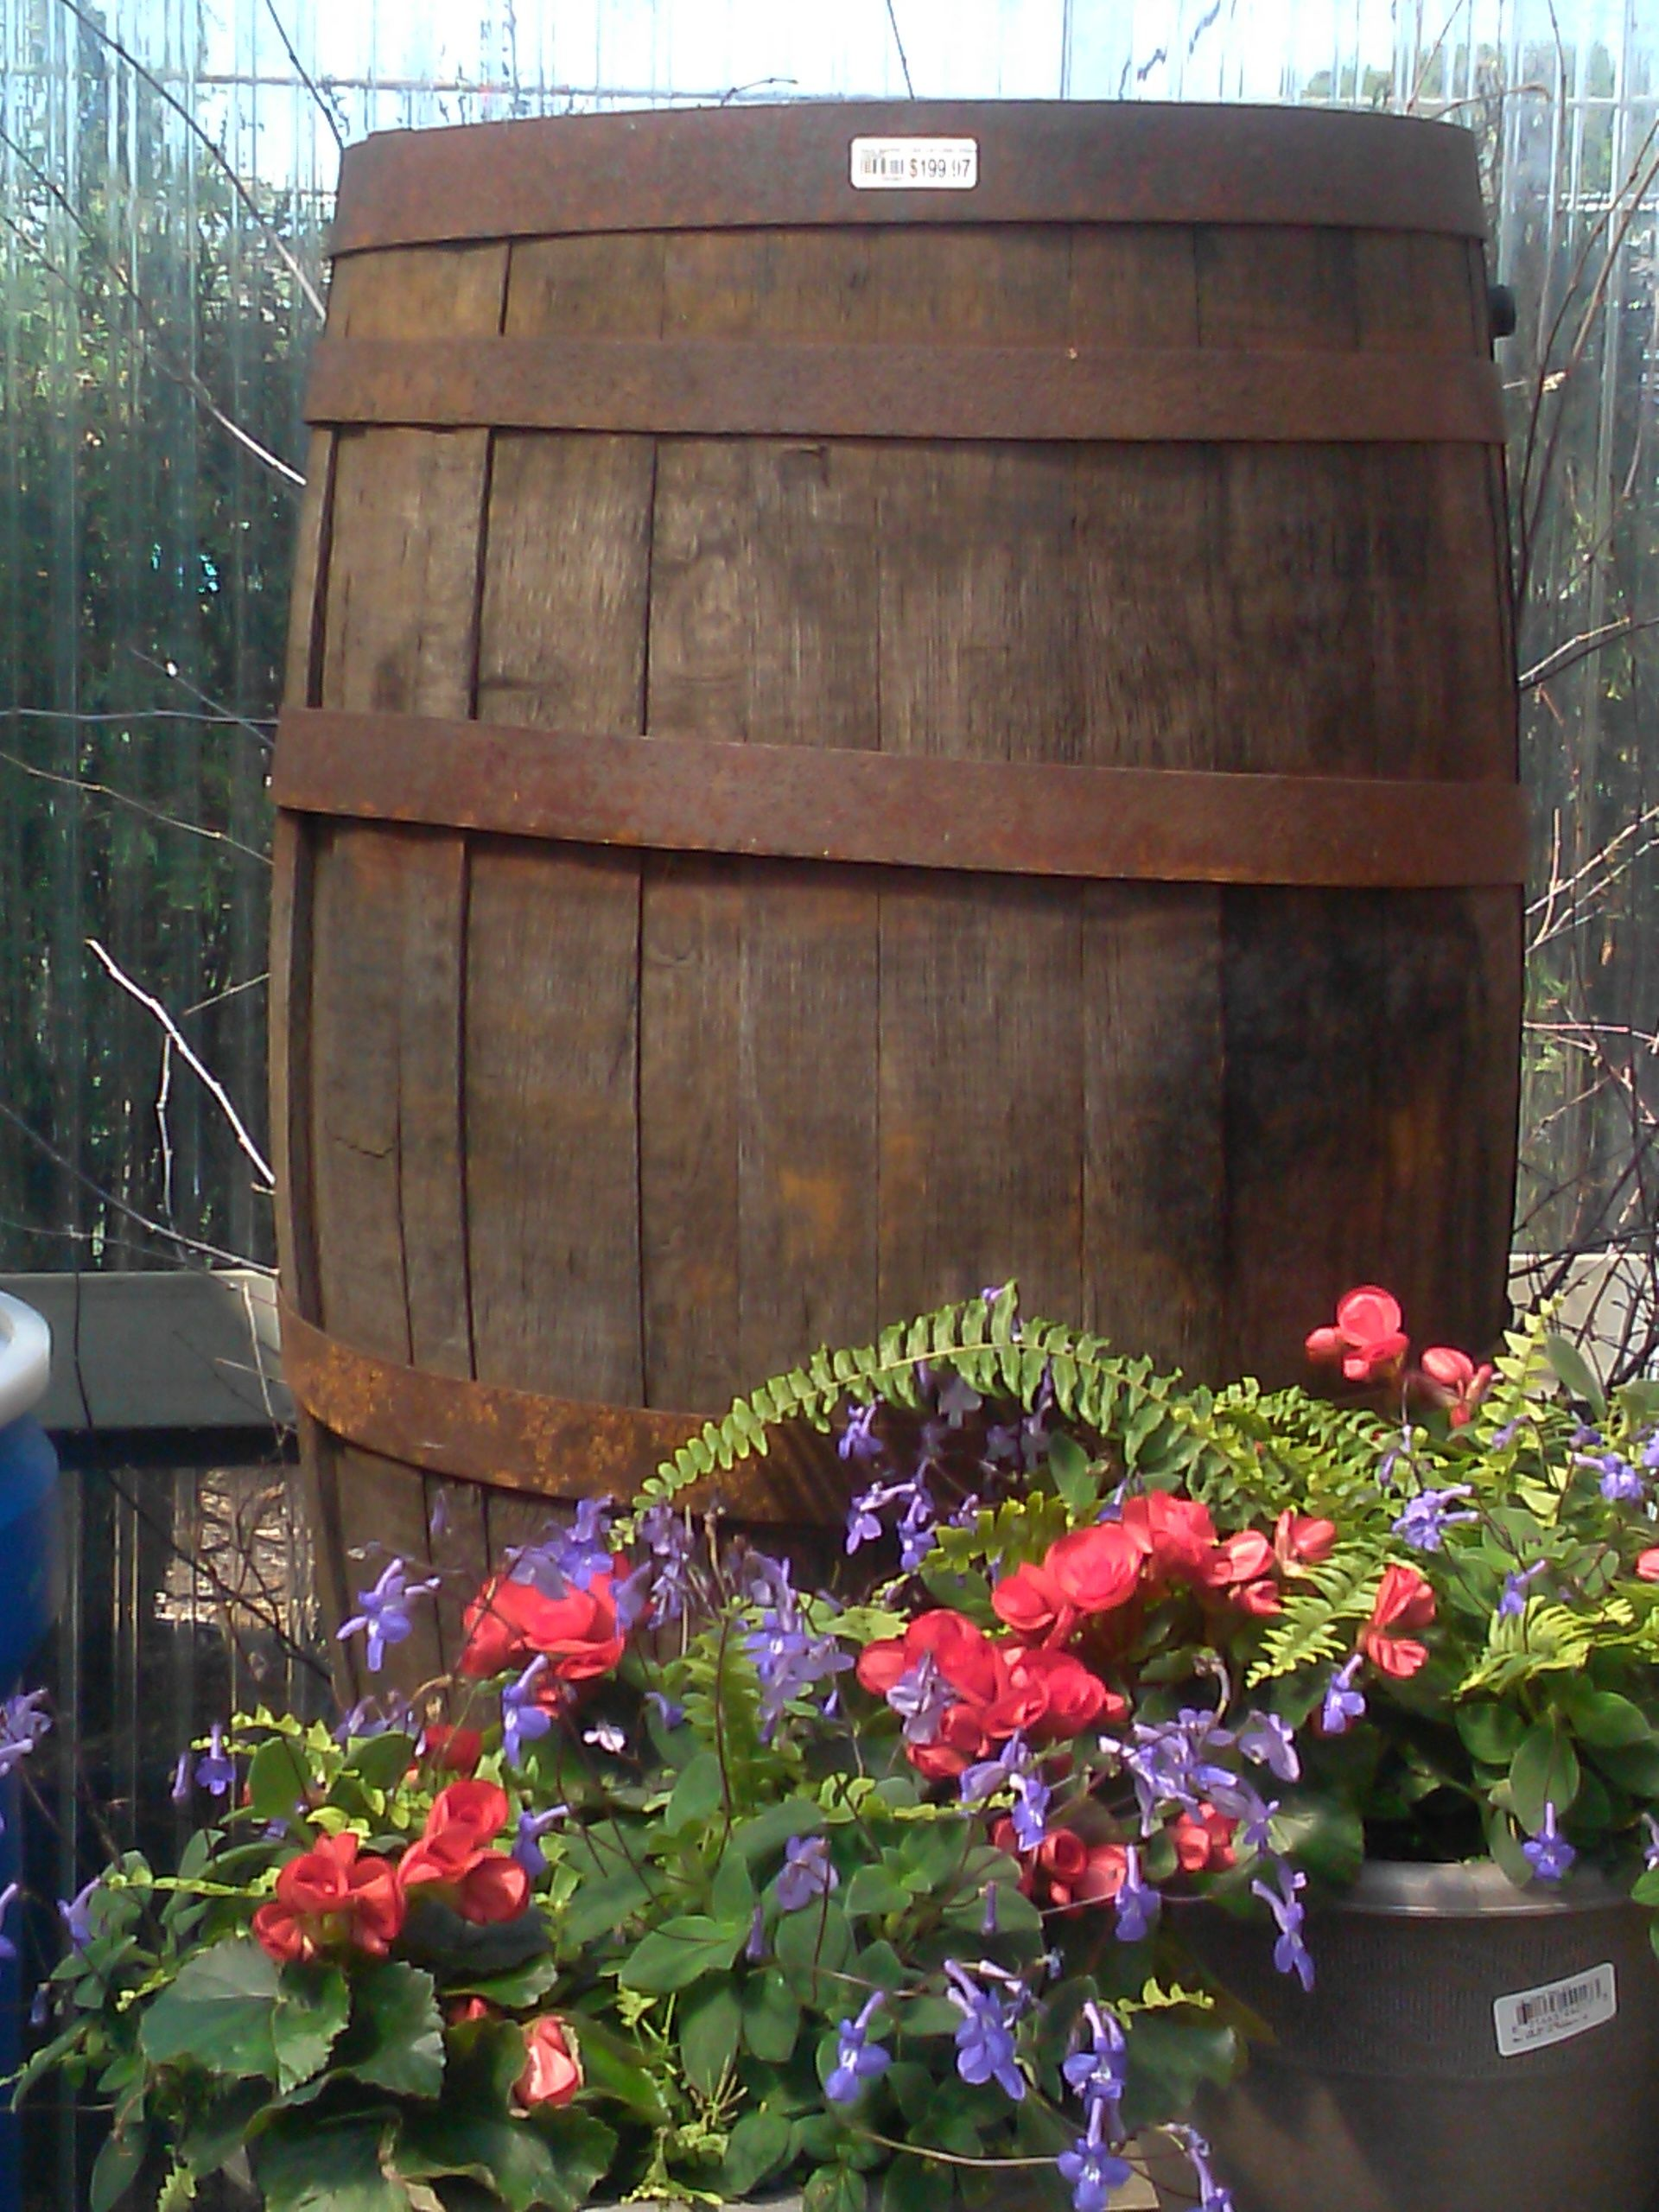 Whiskey rain barrel with flowers | Books Worth Reading | Pinterest ...